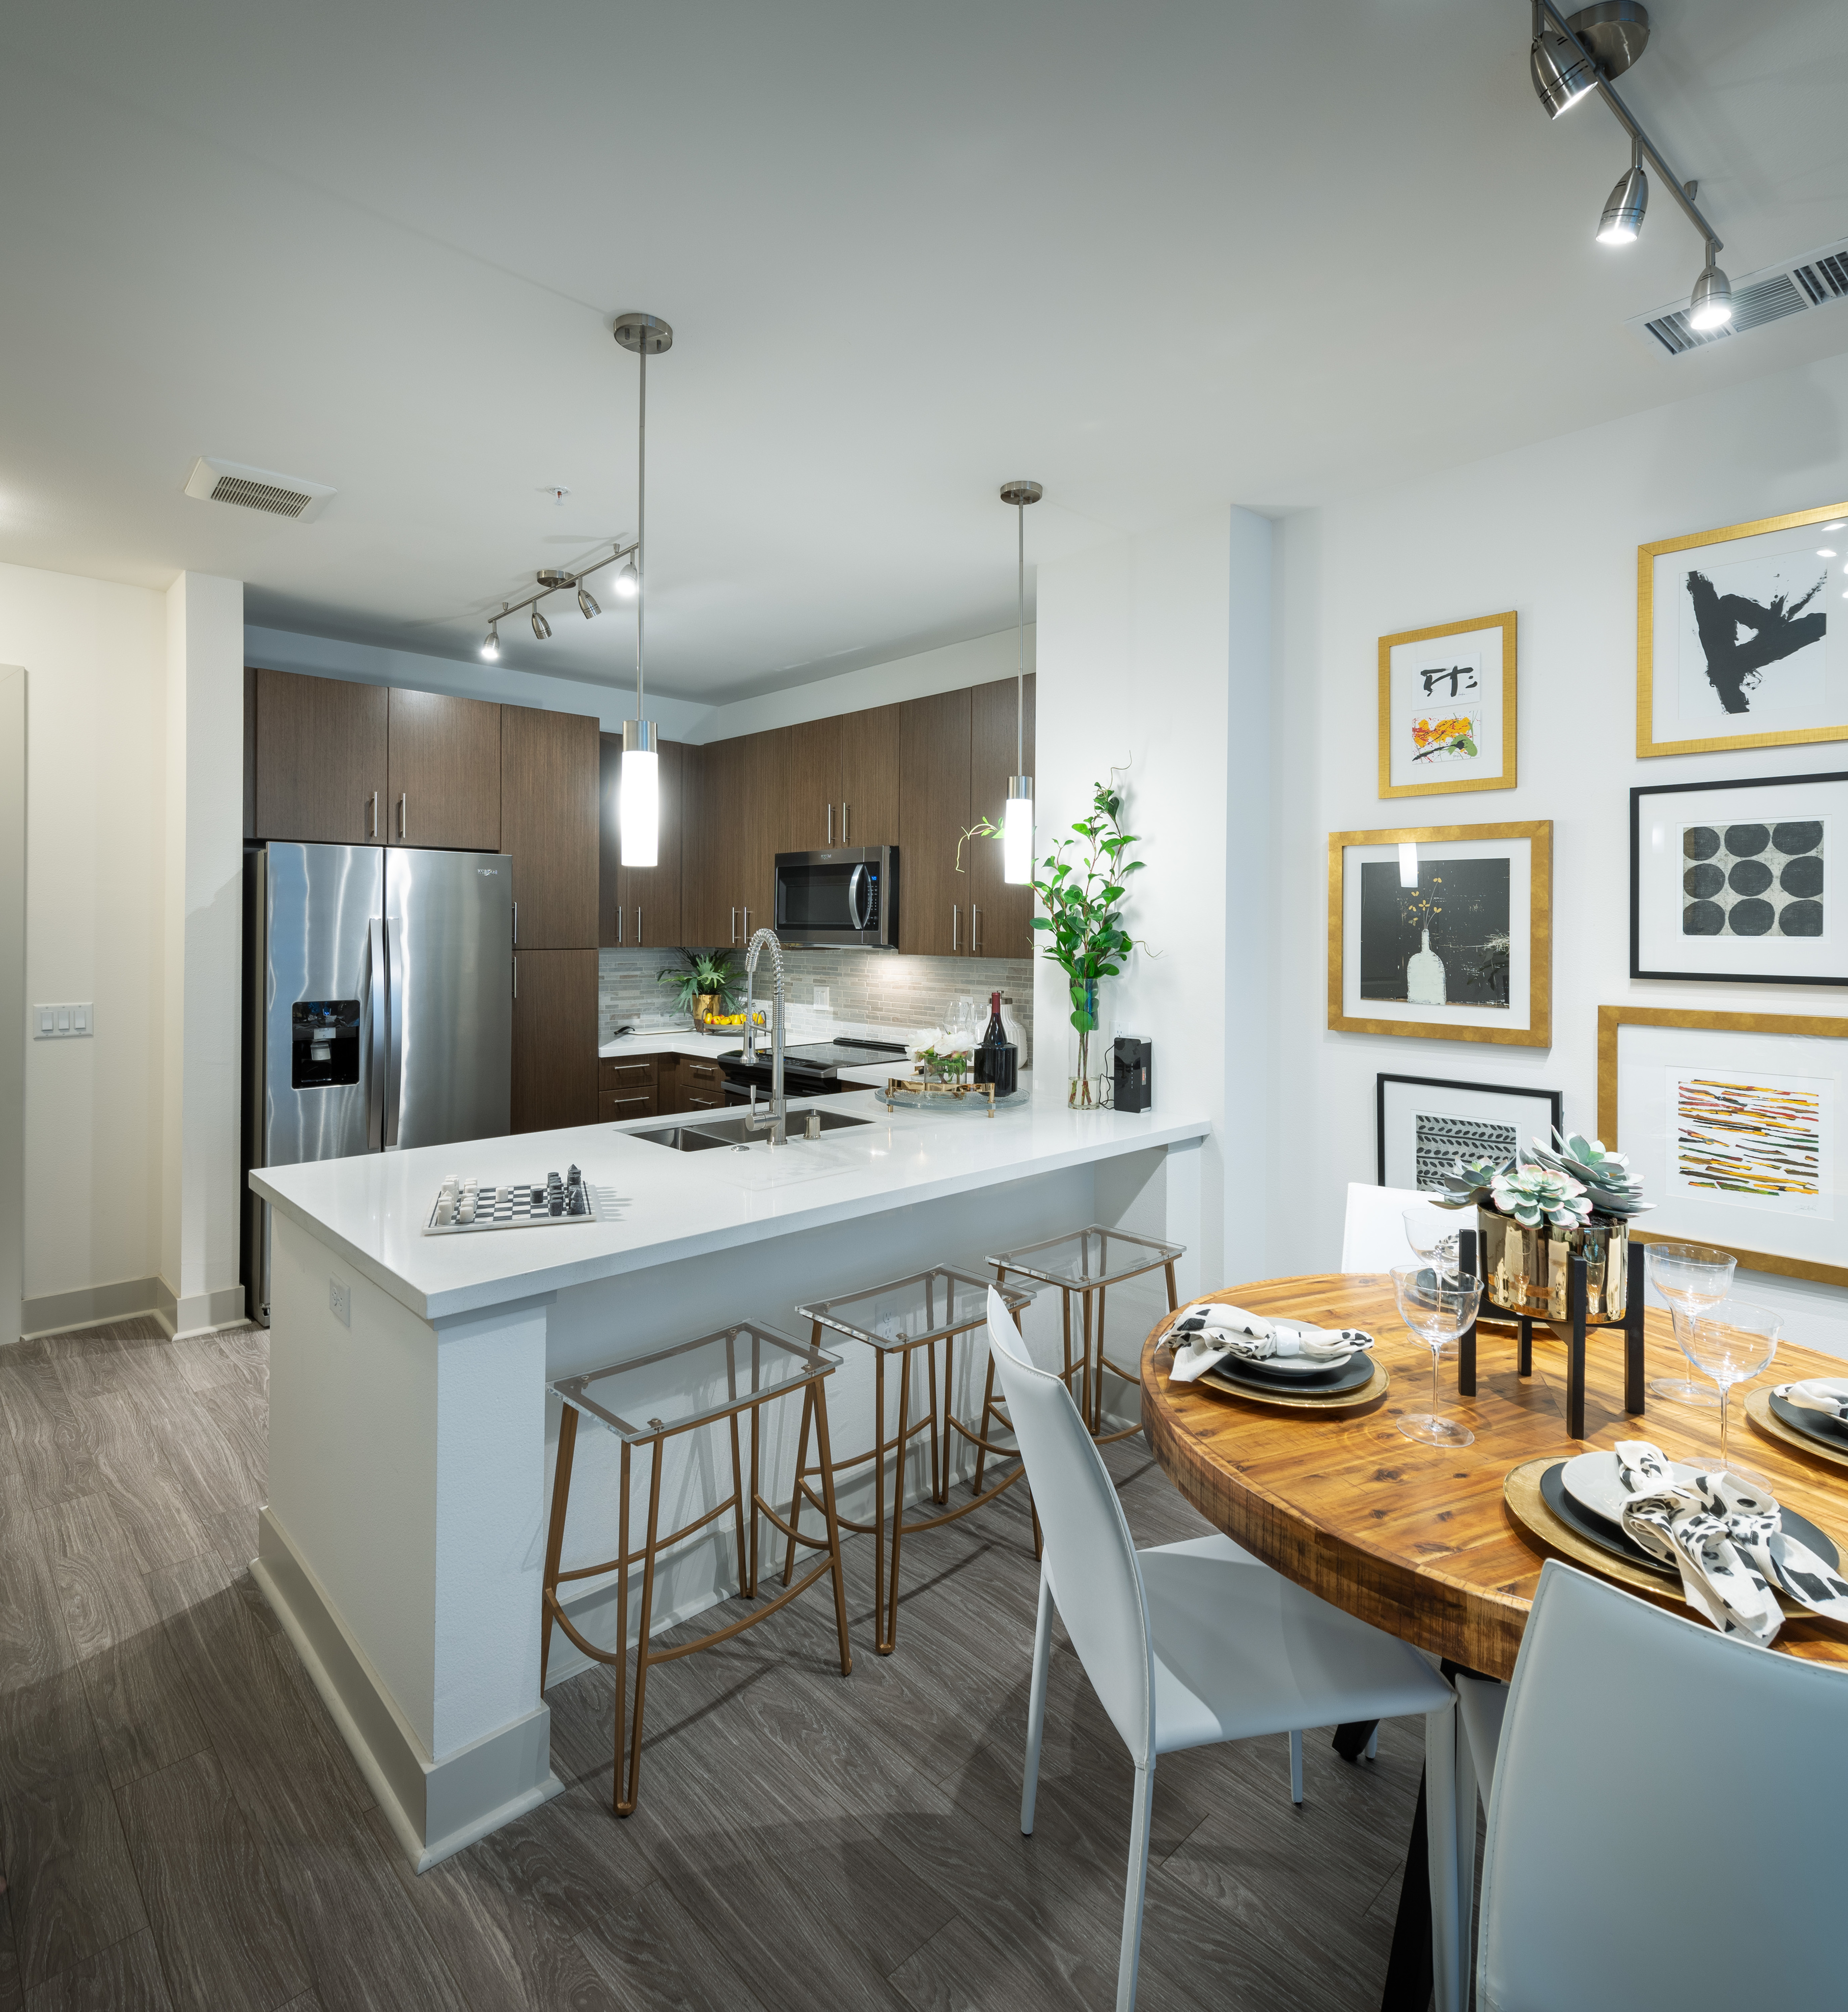 Image of Gourmet chef kitchens with stainless steel appliances for Hanover Broadway